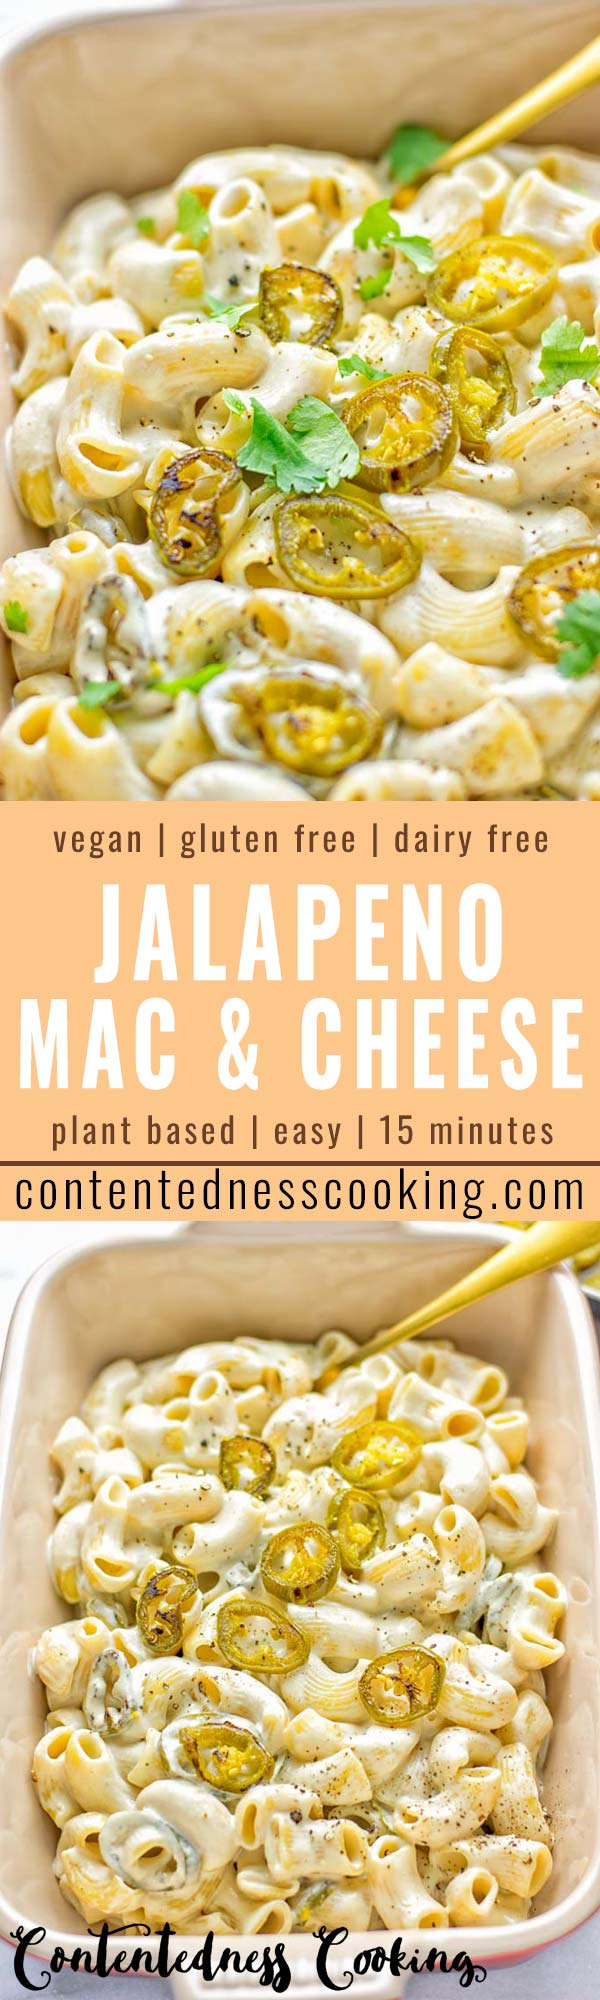 This Jalapeno Mac and Cheese is super easy to make and in 15 minutes on the table! It's creamy and perfectly spicy and entirely vegan, gluten free. An amazing option for dinner, lunch, meal prep, work lunch and so much more that the whole family will love. Try it for yourself and know this will be a staple in any house. #vegan #dairyfree #glutenfree #contentednesscooking #macandcheese #jalapeno #dinner #lunch #mealprep #worklunchideas #15minutemeals #familyfood #comfortfood